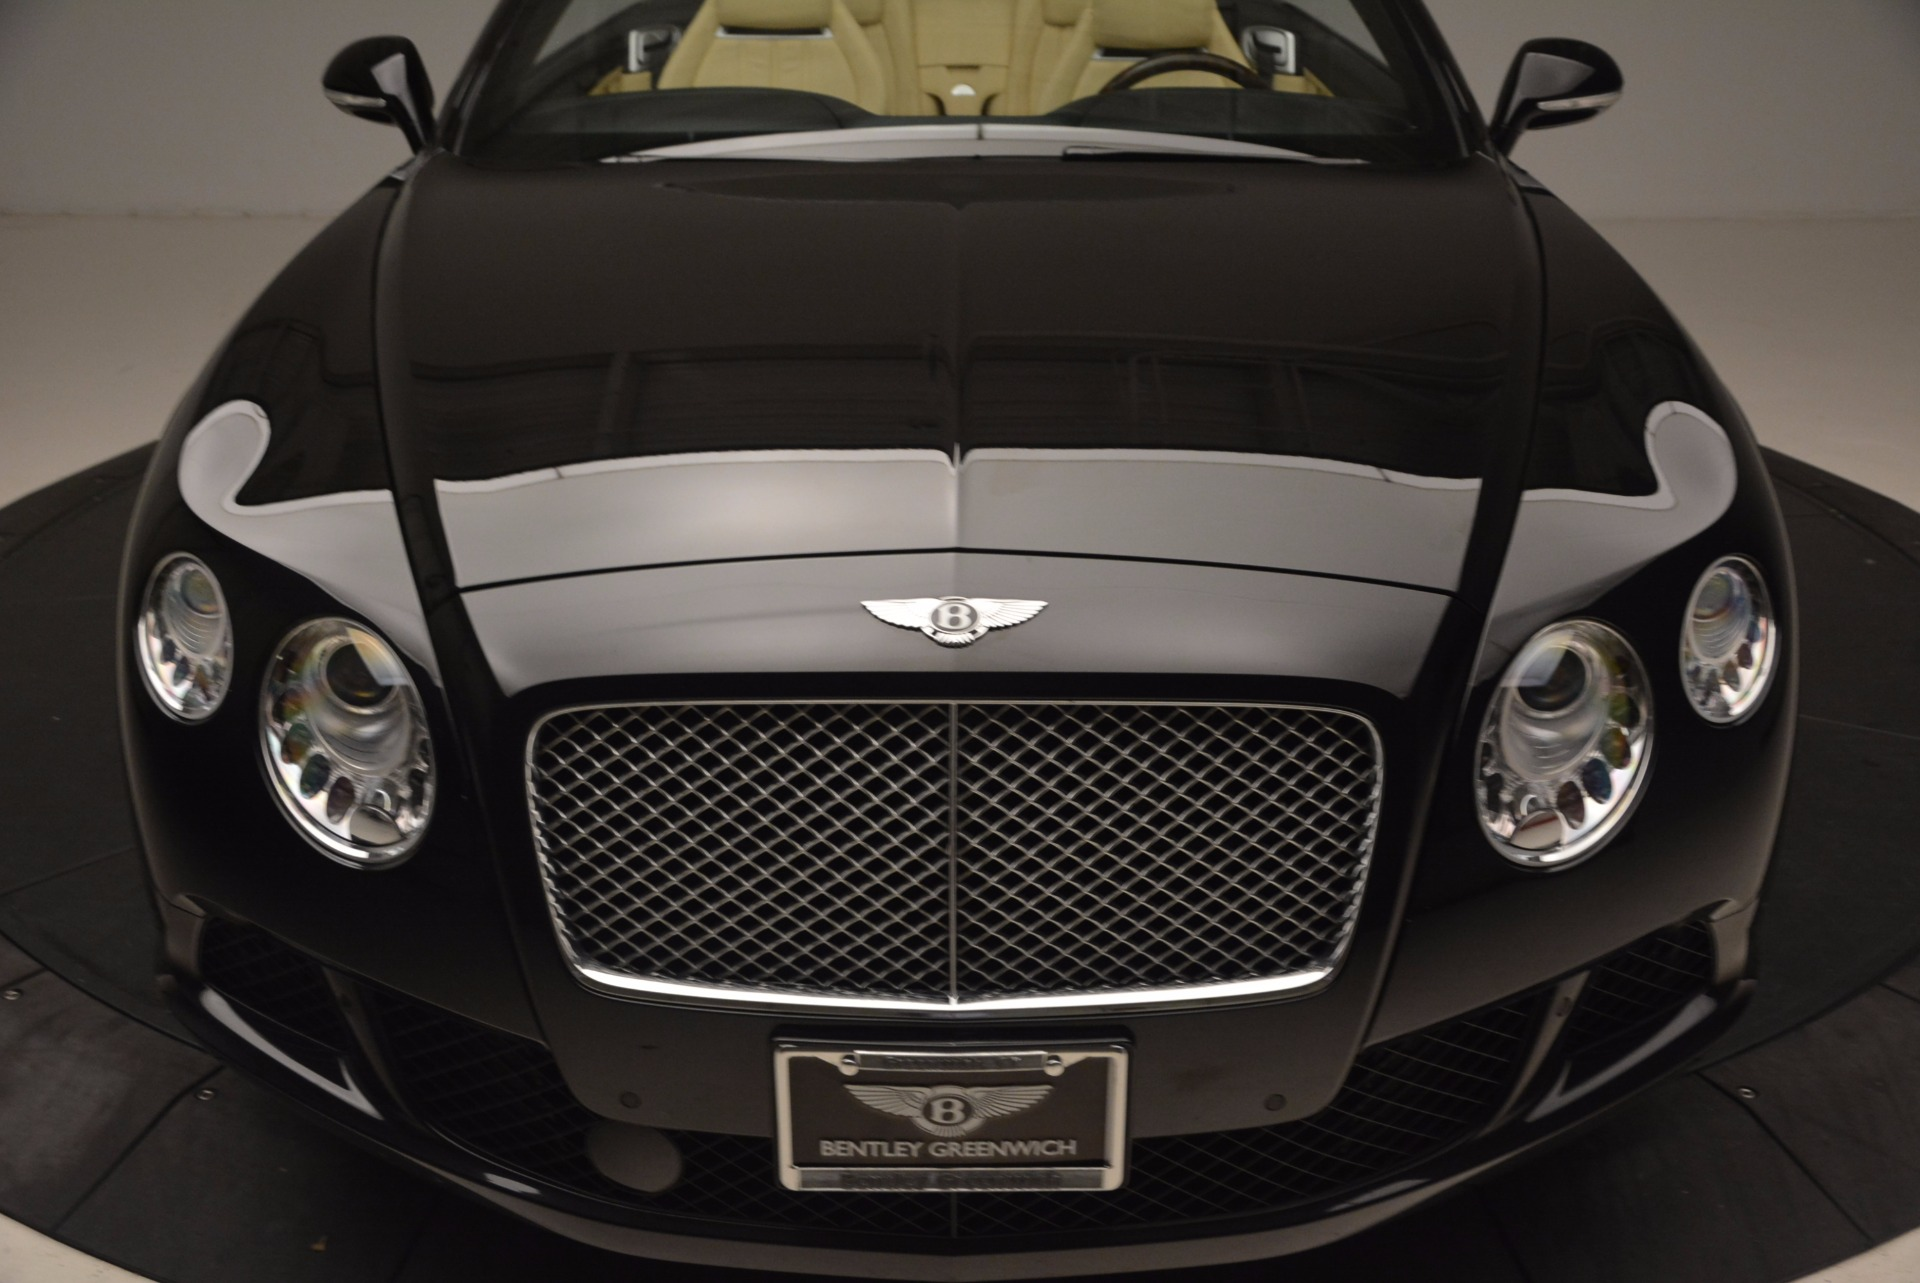 Used 2012 Bentley Continental GT W12 For Sale In Westport, CT 1656_p24